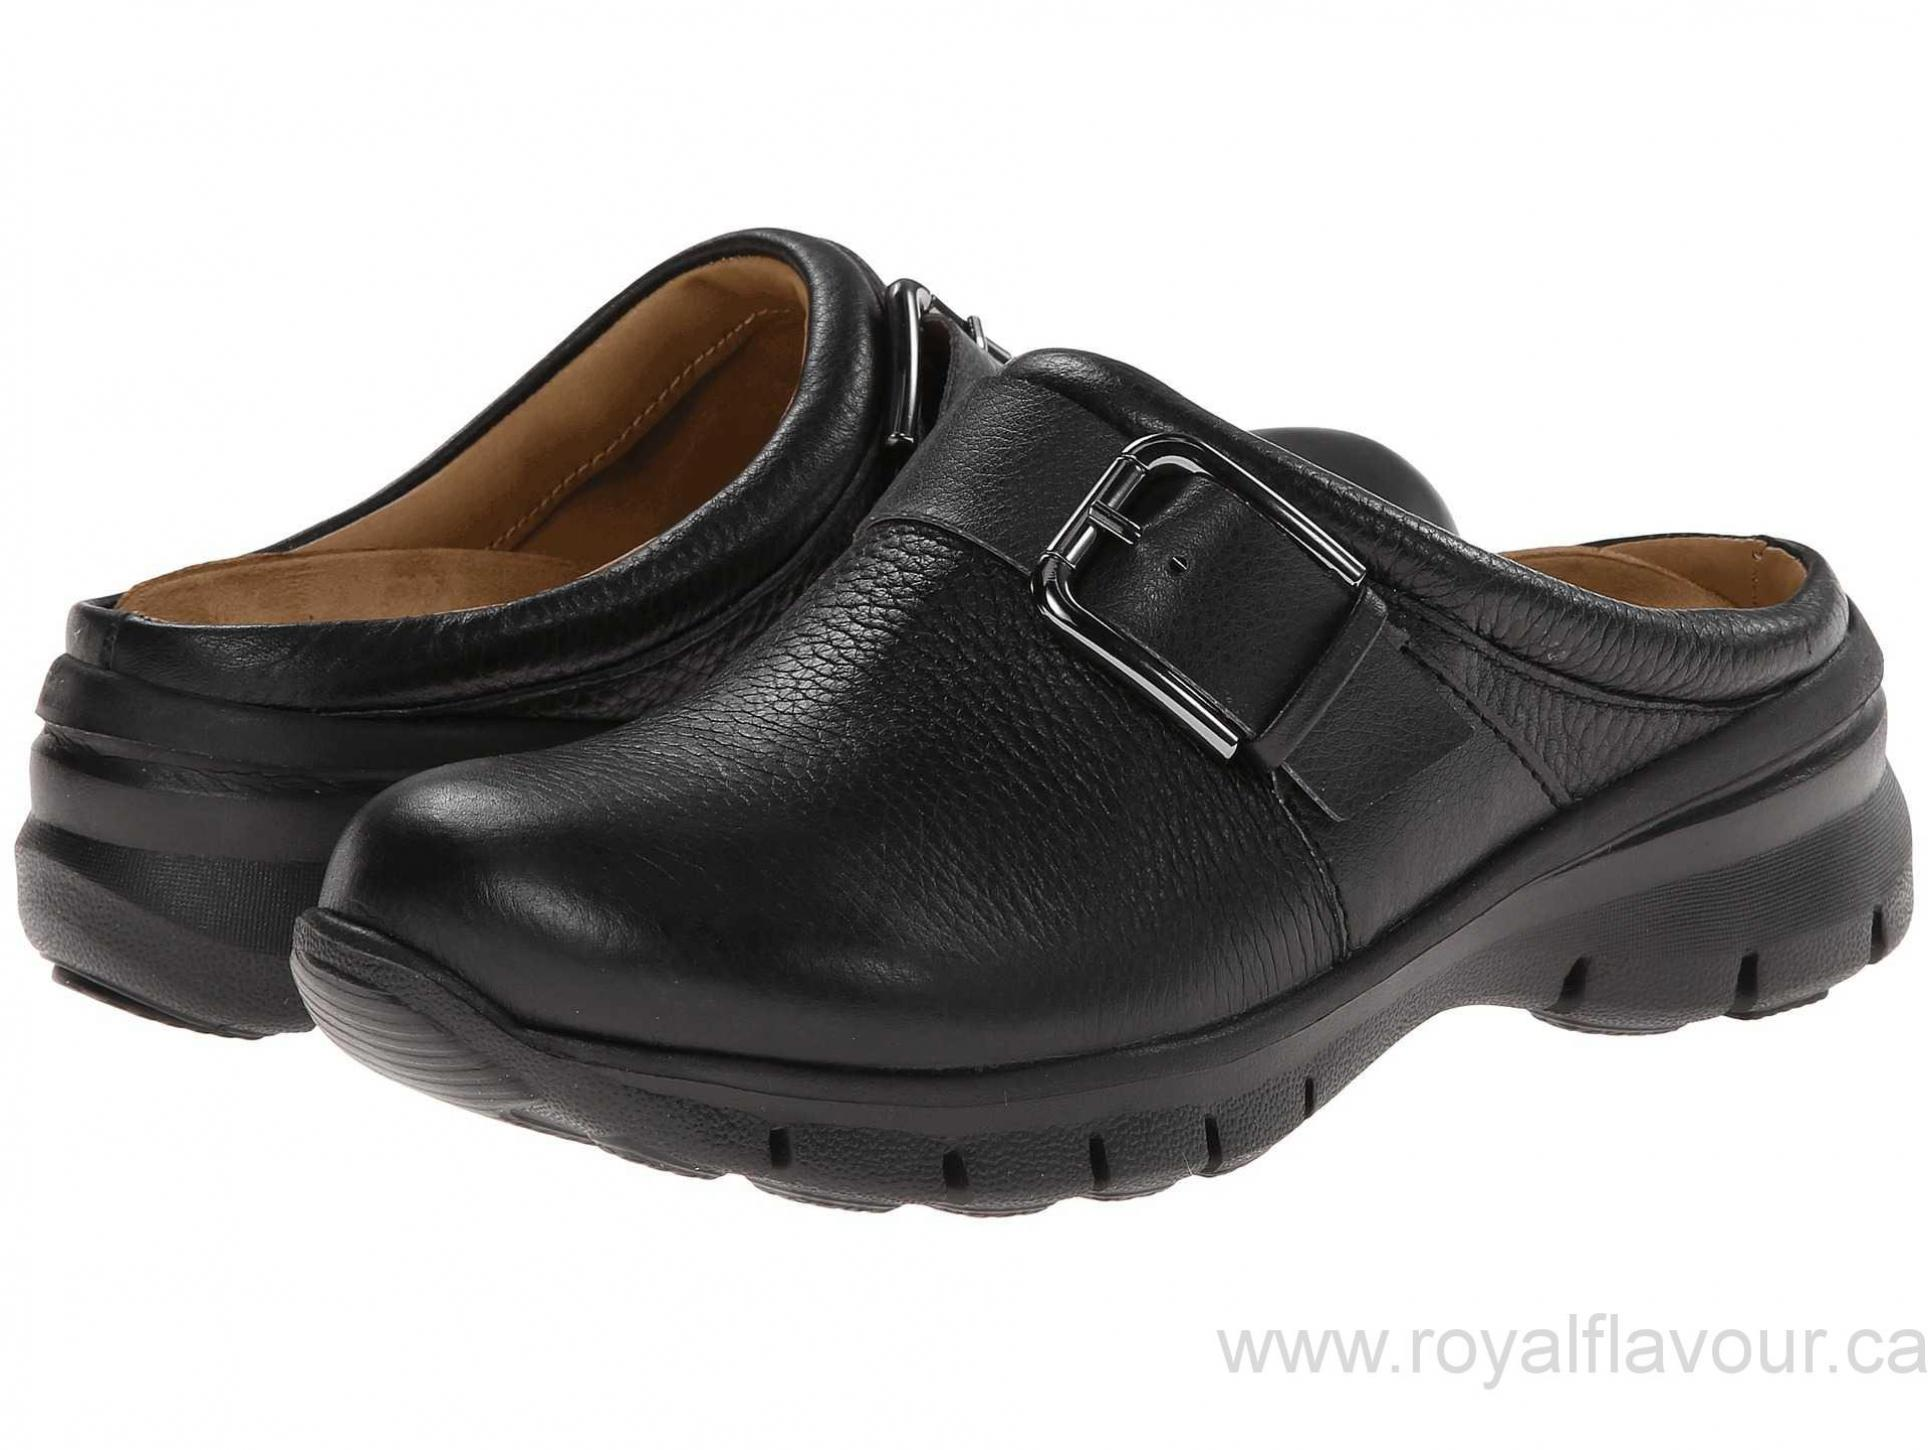 Womens-Footwear-Nurse-Mates-Linzi-Black-Clogs-Mules-Nurse-Mates-Shoes-Canada-KO91006626.jpg